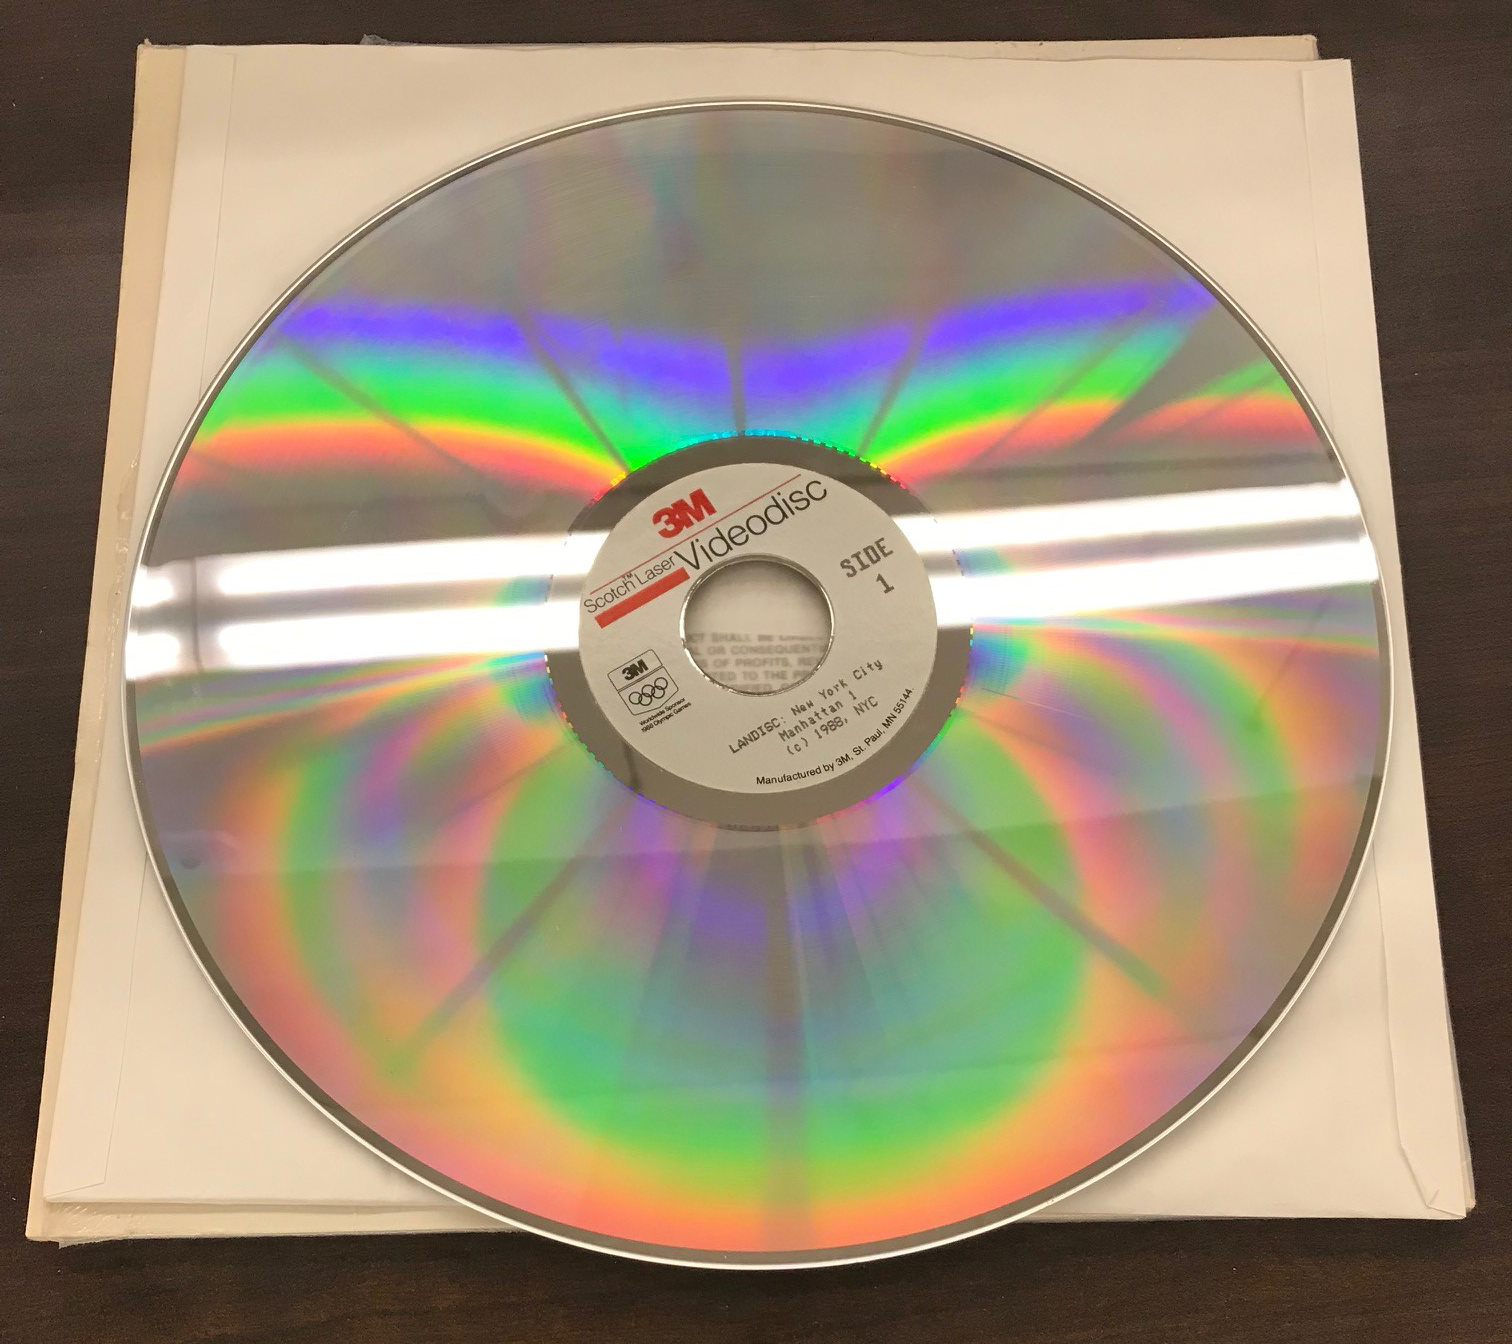 A 12-inch Laser Video Disk containing photographs of Manhattan from the 1980s Tax Photo project.